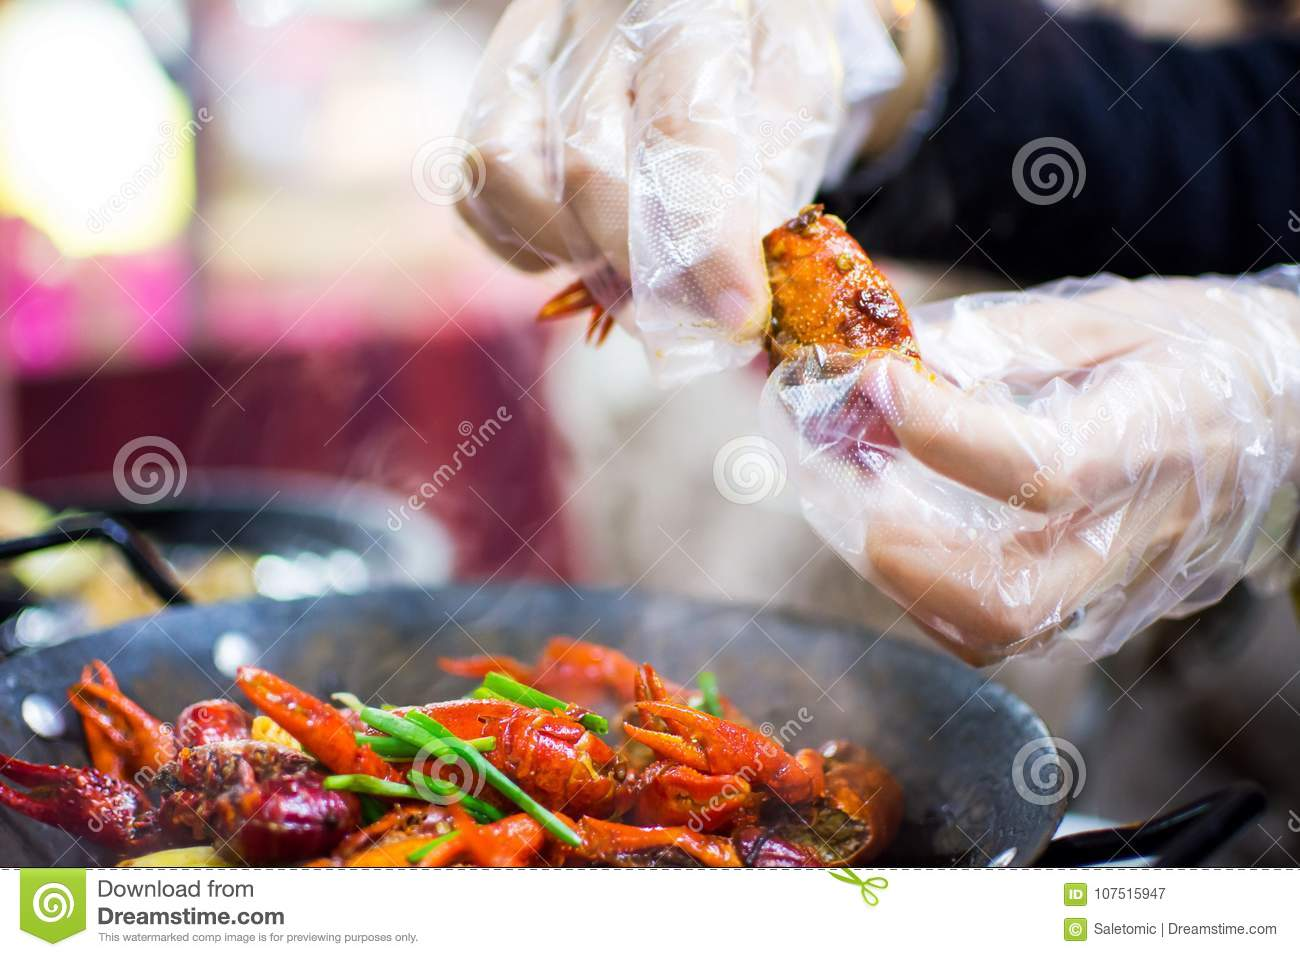 Hands with plastic gloves taking crayfish from spicy crayfish po